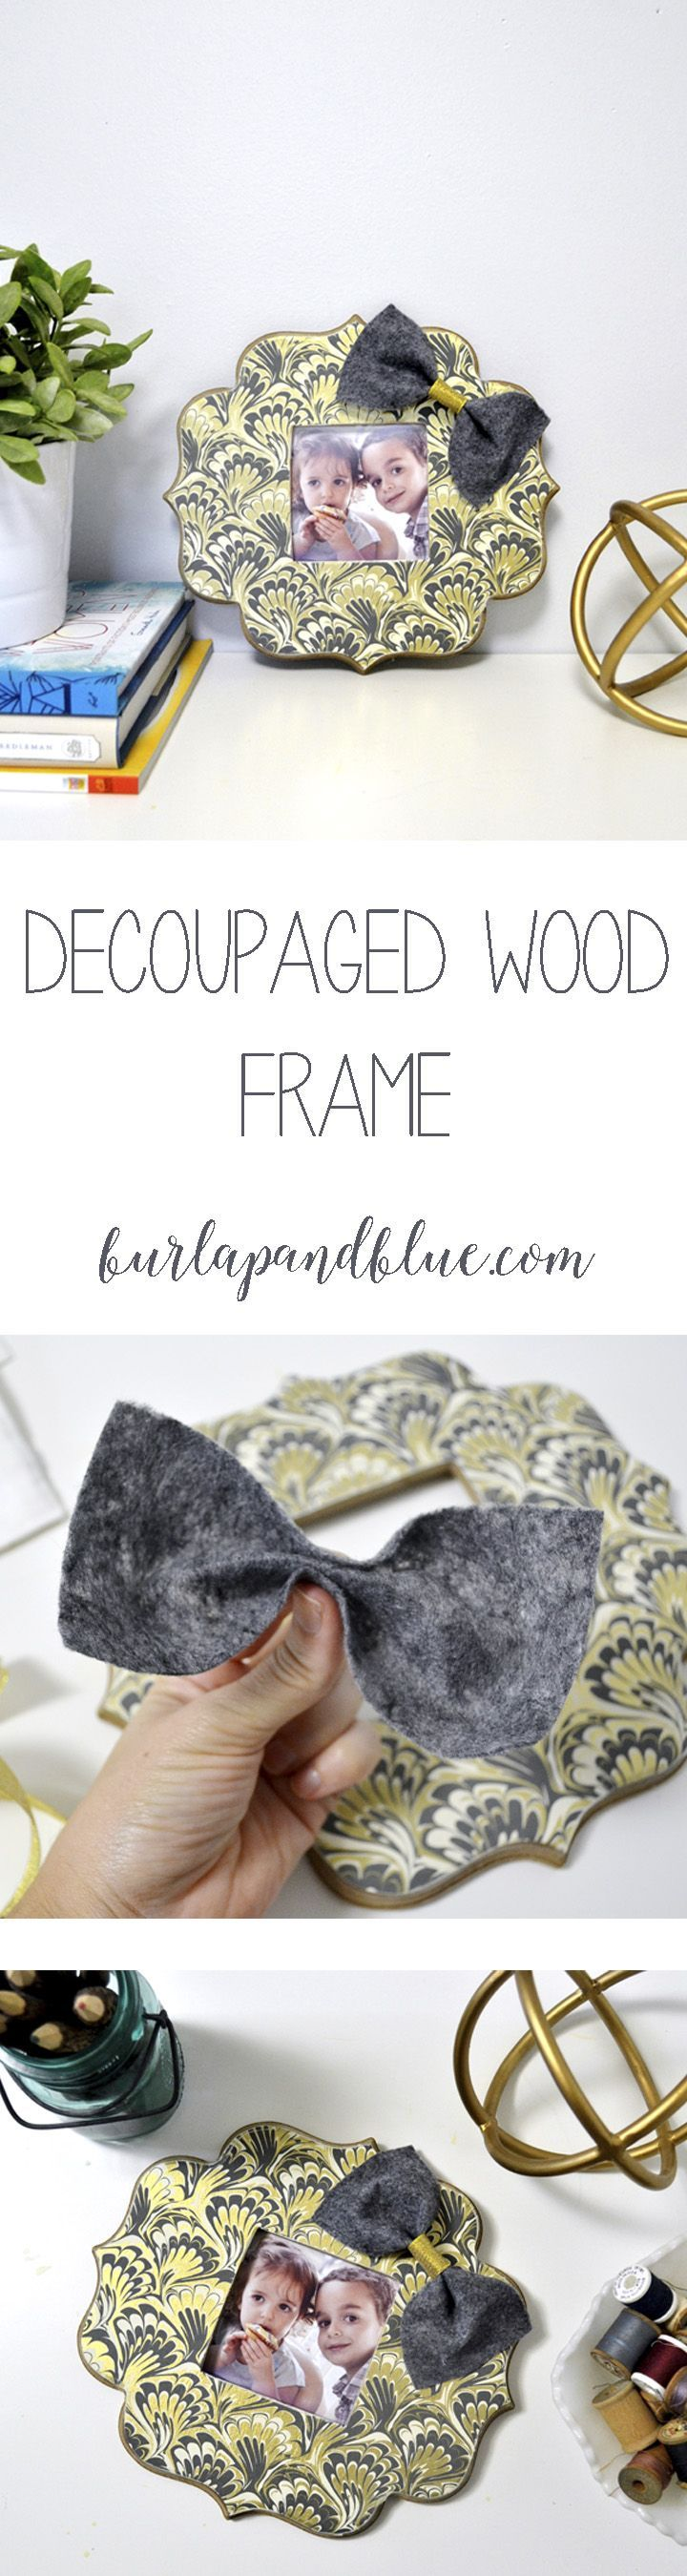 Unfinished wood picture frames craft - Decoupage An Unfinished Wood Frame Last Minute Holiday Gift Idea